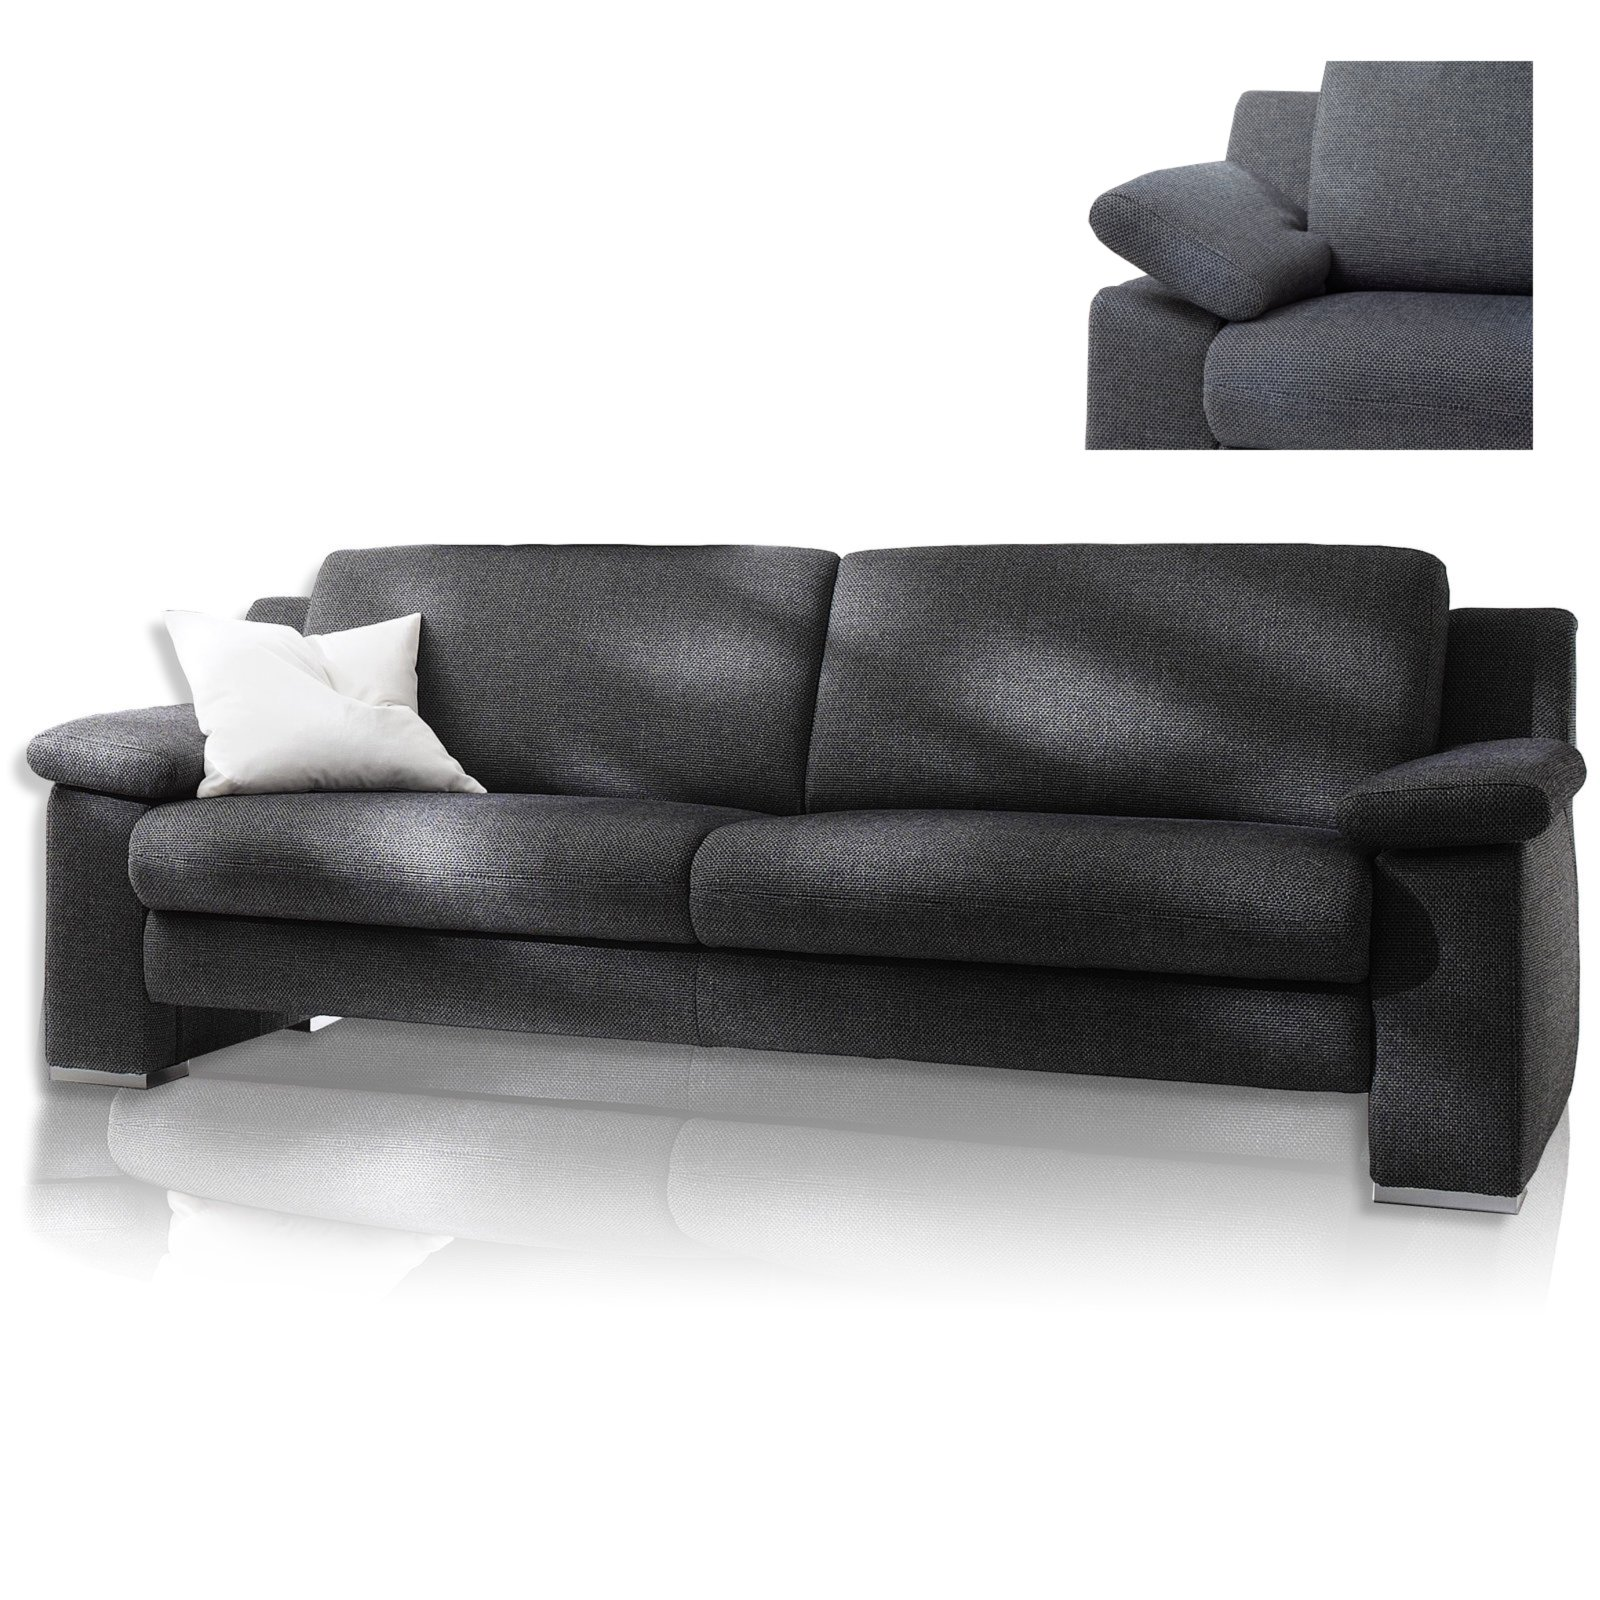 3 sitzer sofa grau mit sitzauszug einzelsofas 2er 3er 4er sofas couches m bel. Black Bedroom Furniture Sets. Home Design Ideas